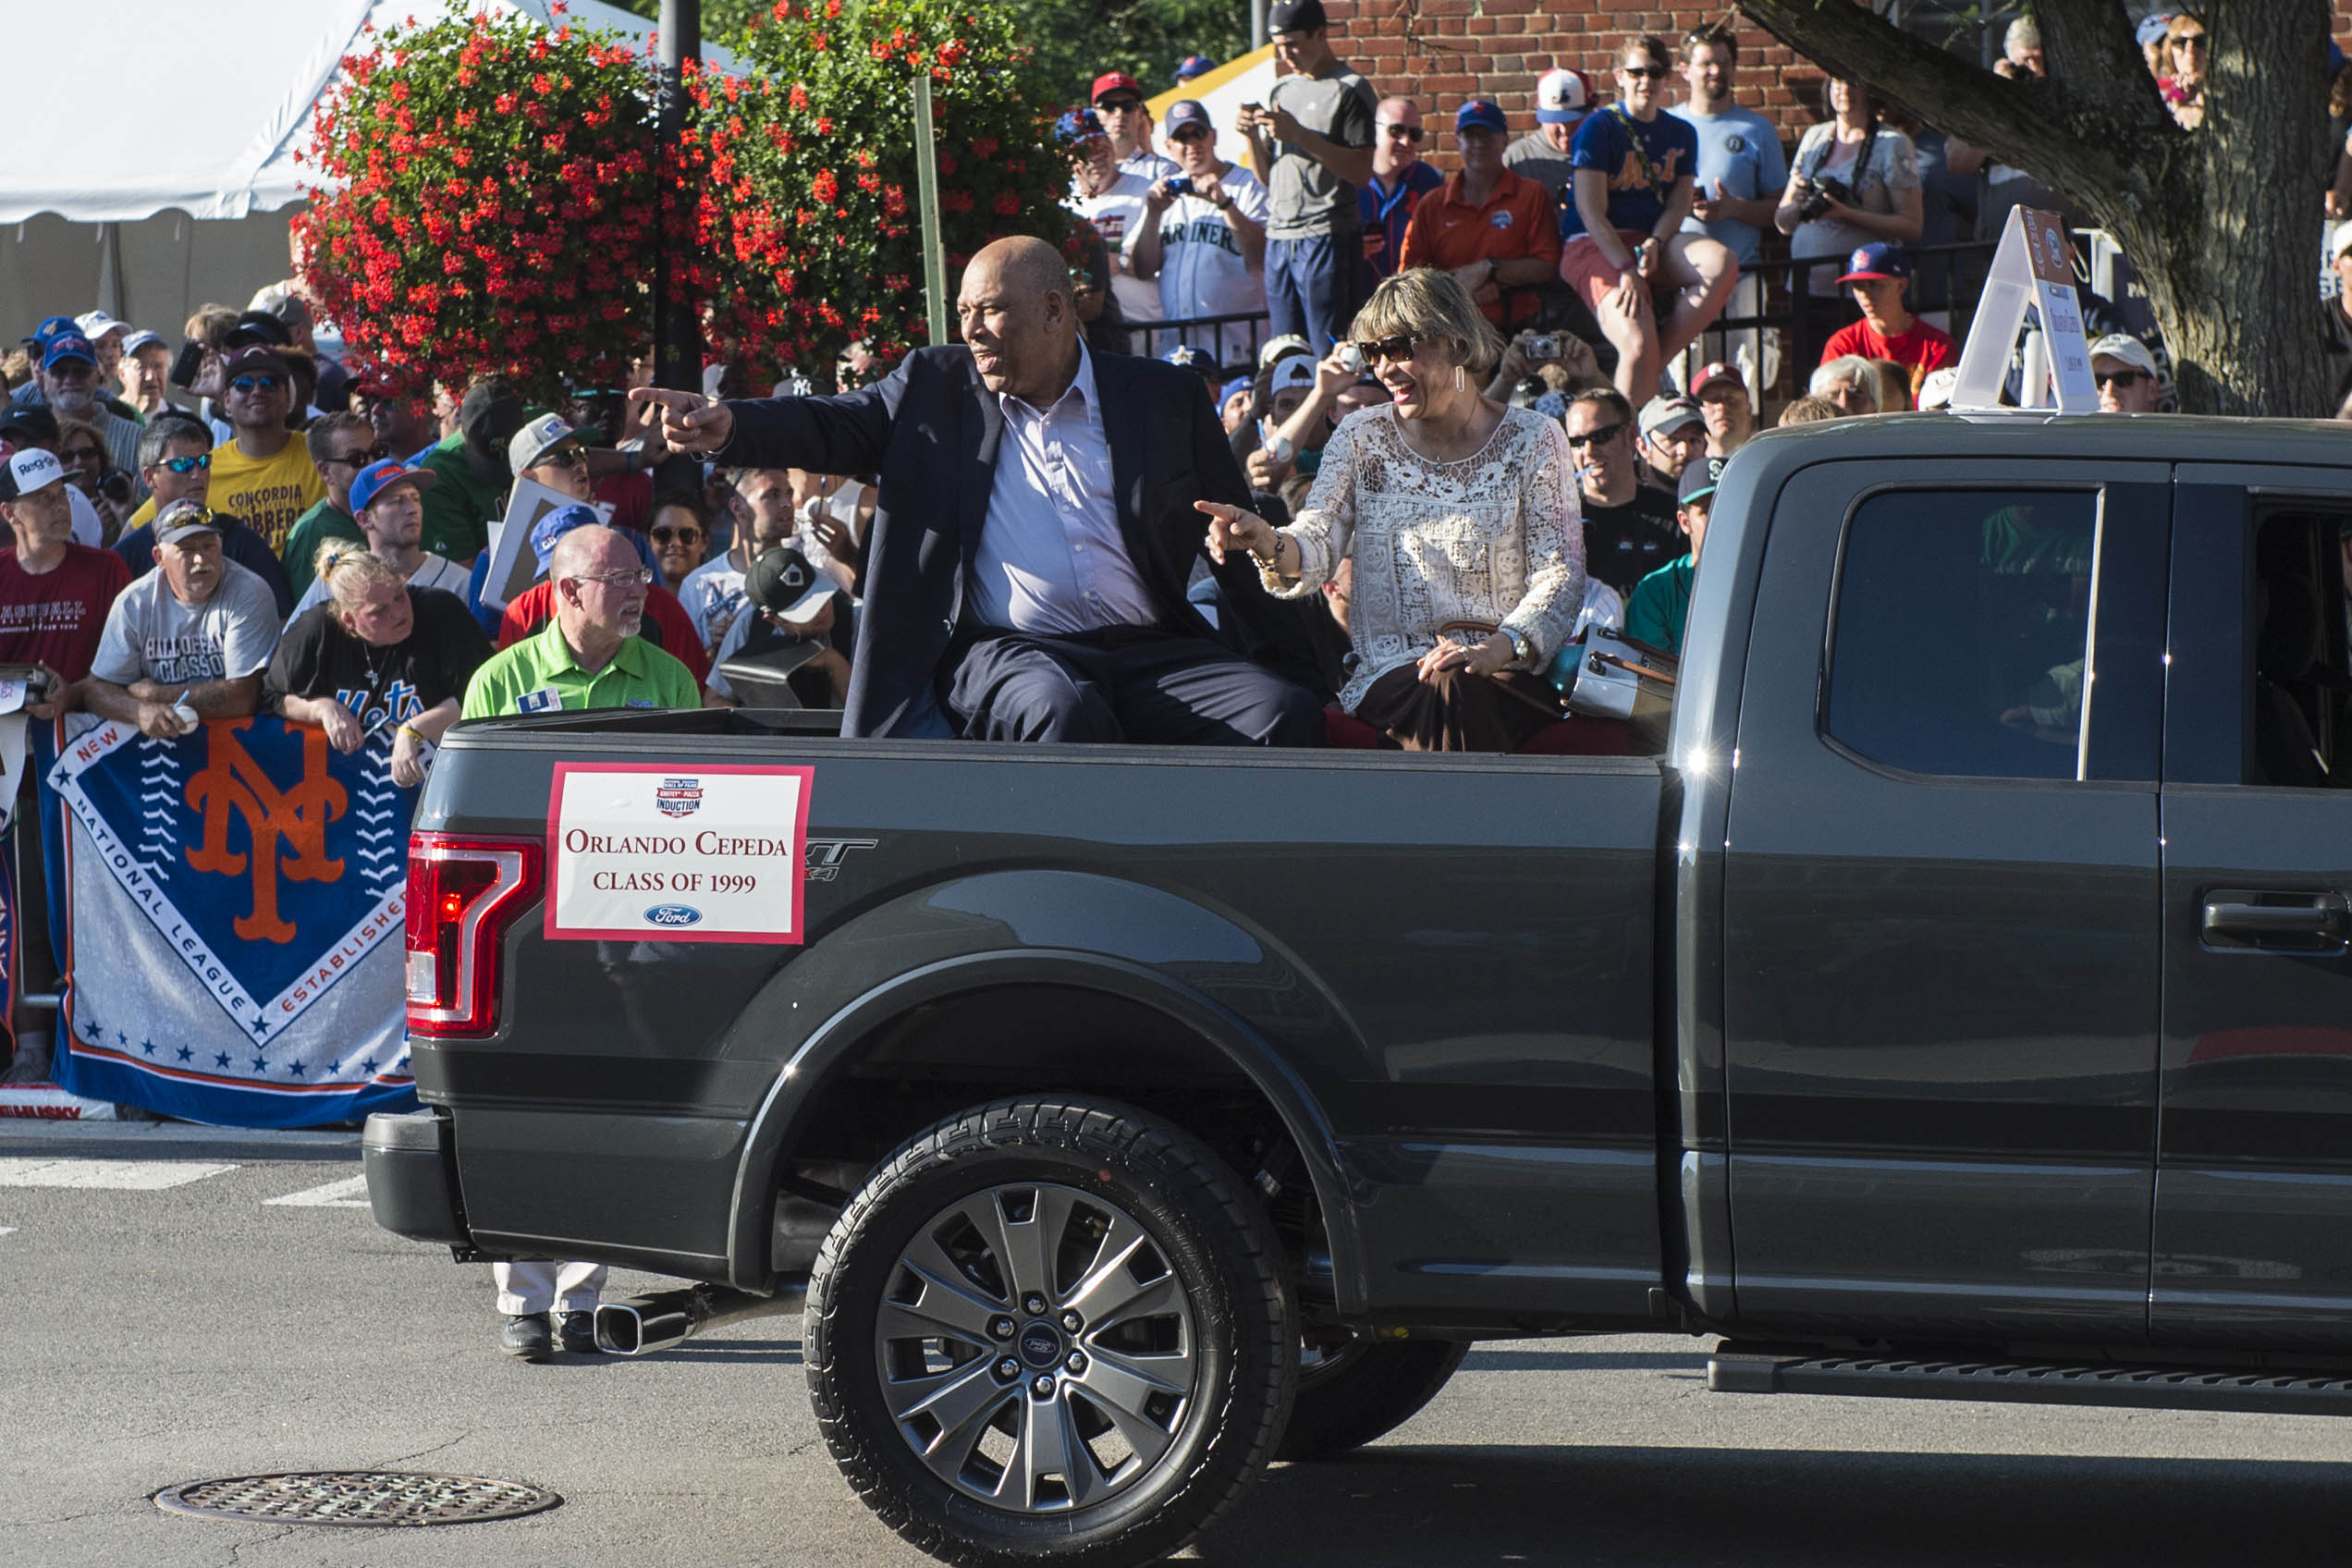 Jul 23, 2016; Cooperstown, NY, USA; Hall of Famer Orlando Cepeda and his wife during the MLB baseball hall of fame parade of legends at National Baseball Hall of Fame. Mandatory Credit: Gregory J. Fisher-USA TODAY Sports